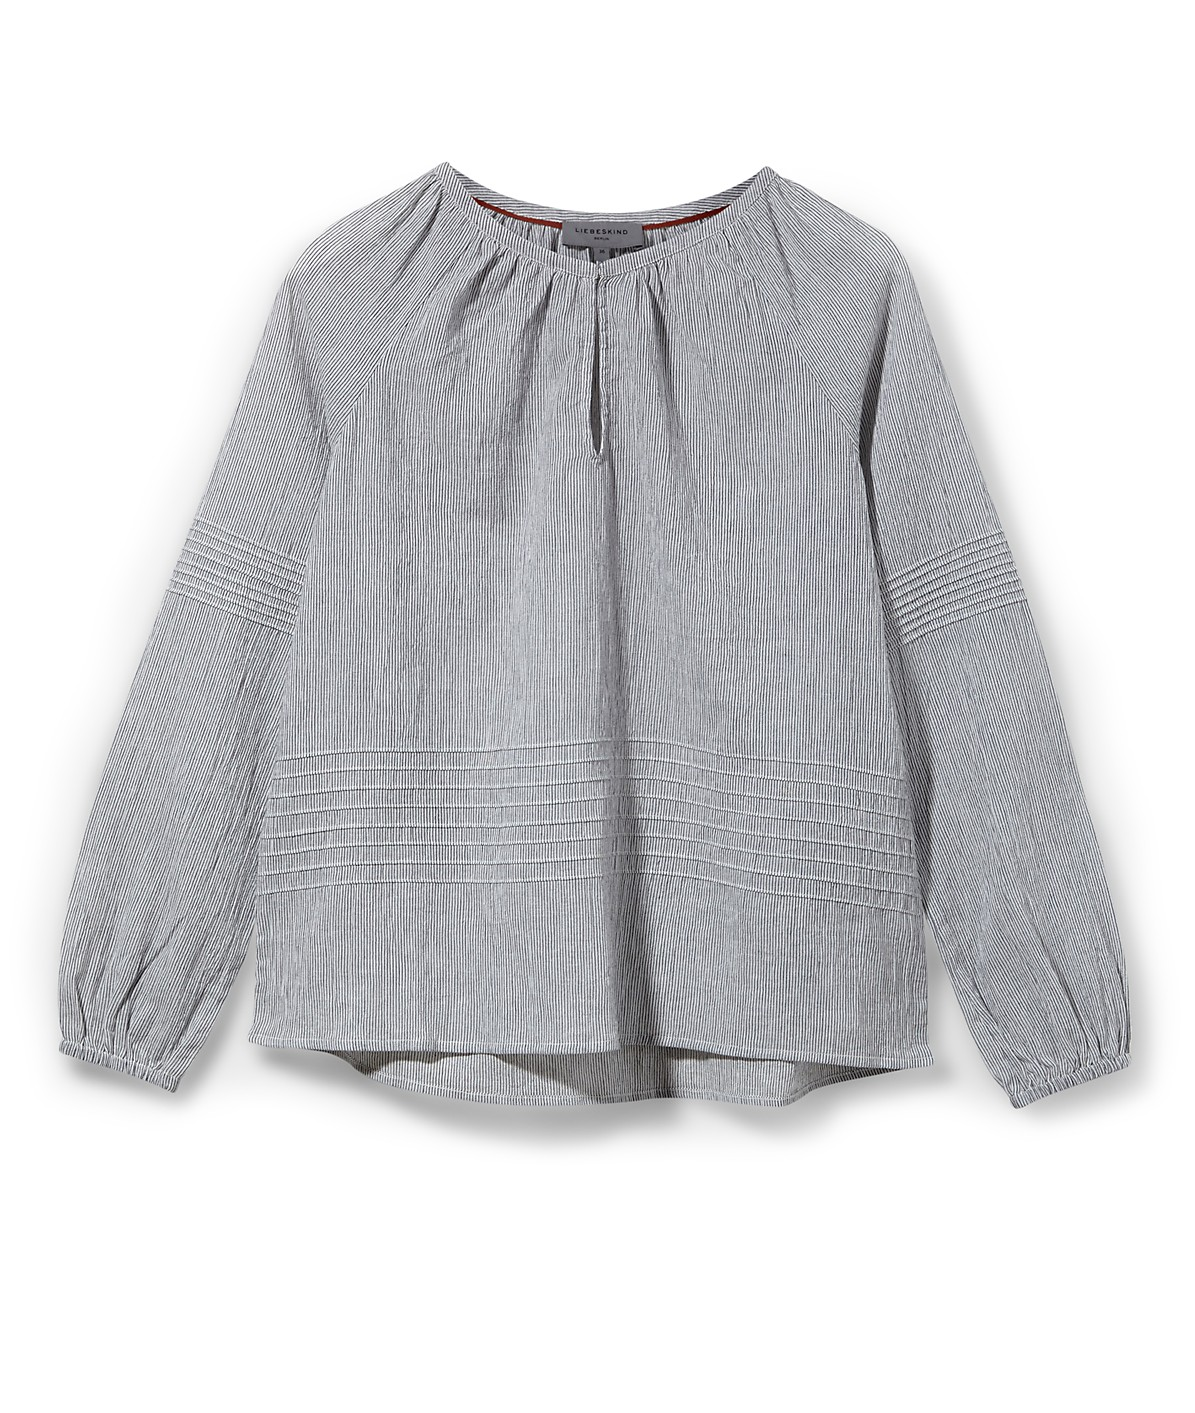 Blouse F1172900 from liebeskind